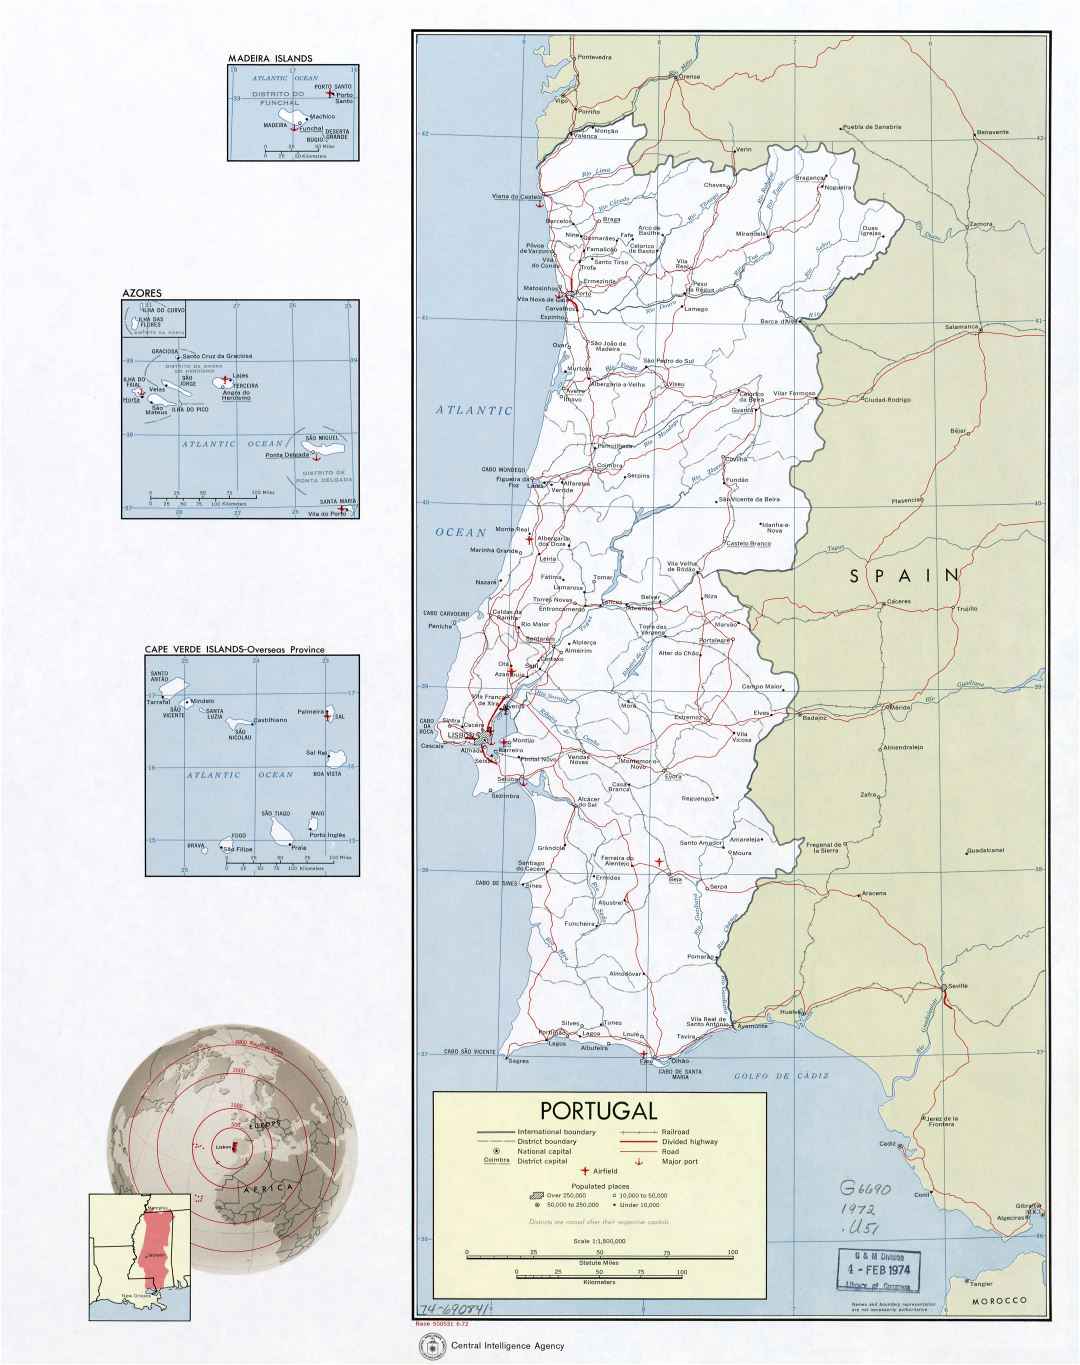 Large scale political and administrative map of Portugal with roads, railroads, major cities, airports and sea ports - 1972